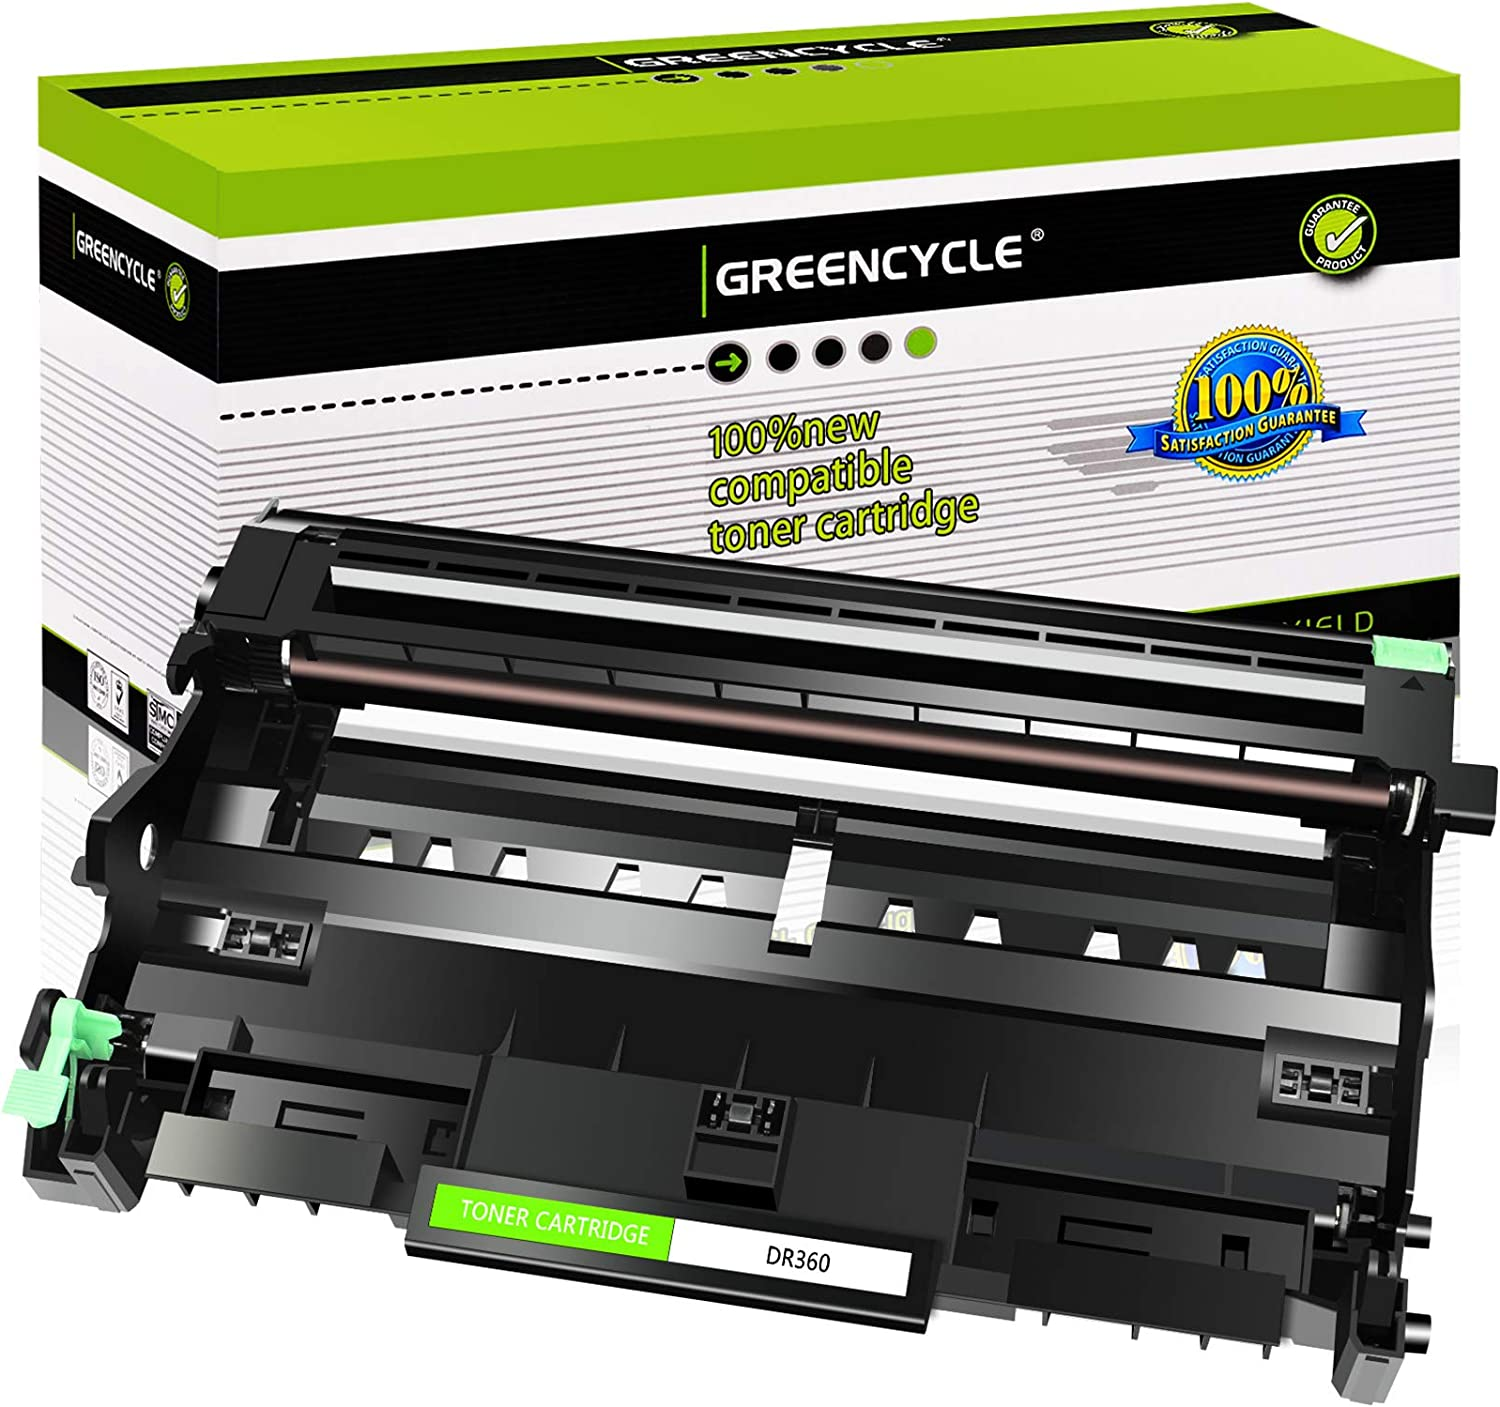 GREENCYCLE 1 Pack Compatible for Brother DR360 Drum Unit Replacement for DCP-7030 DCP-7040 HL-2140 HL-2150N MFC-7340 MFC-7345DN Printer